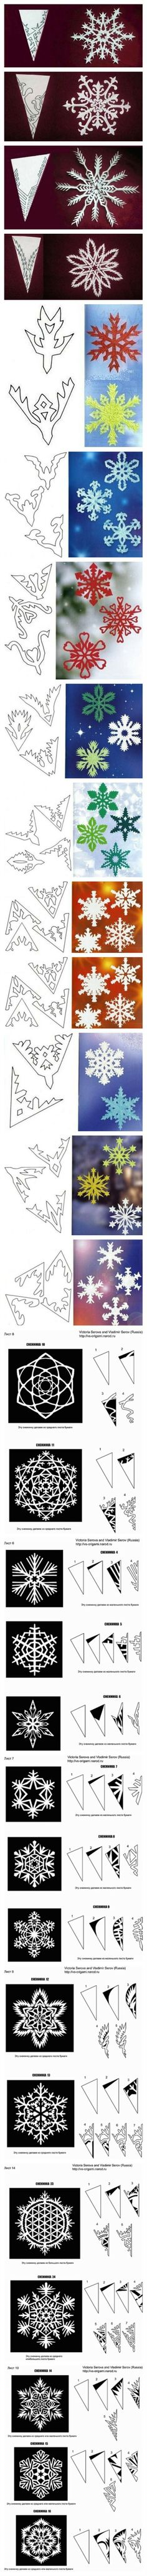 Snowflake patterns.